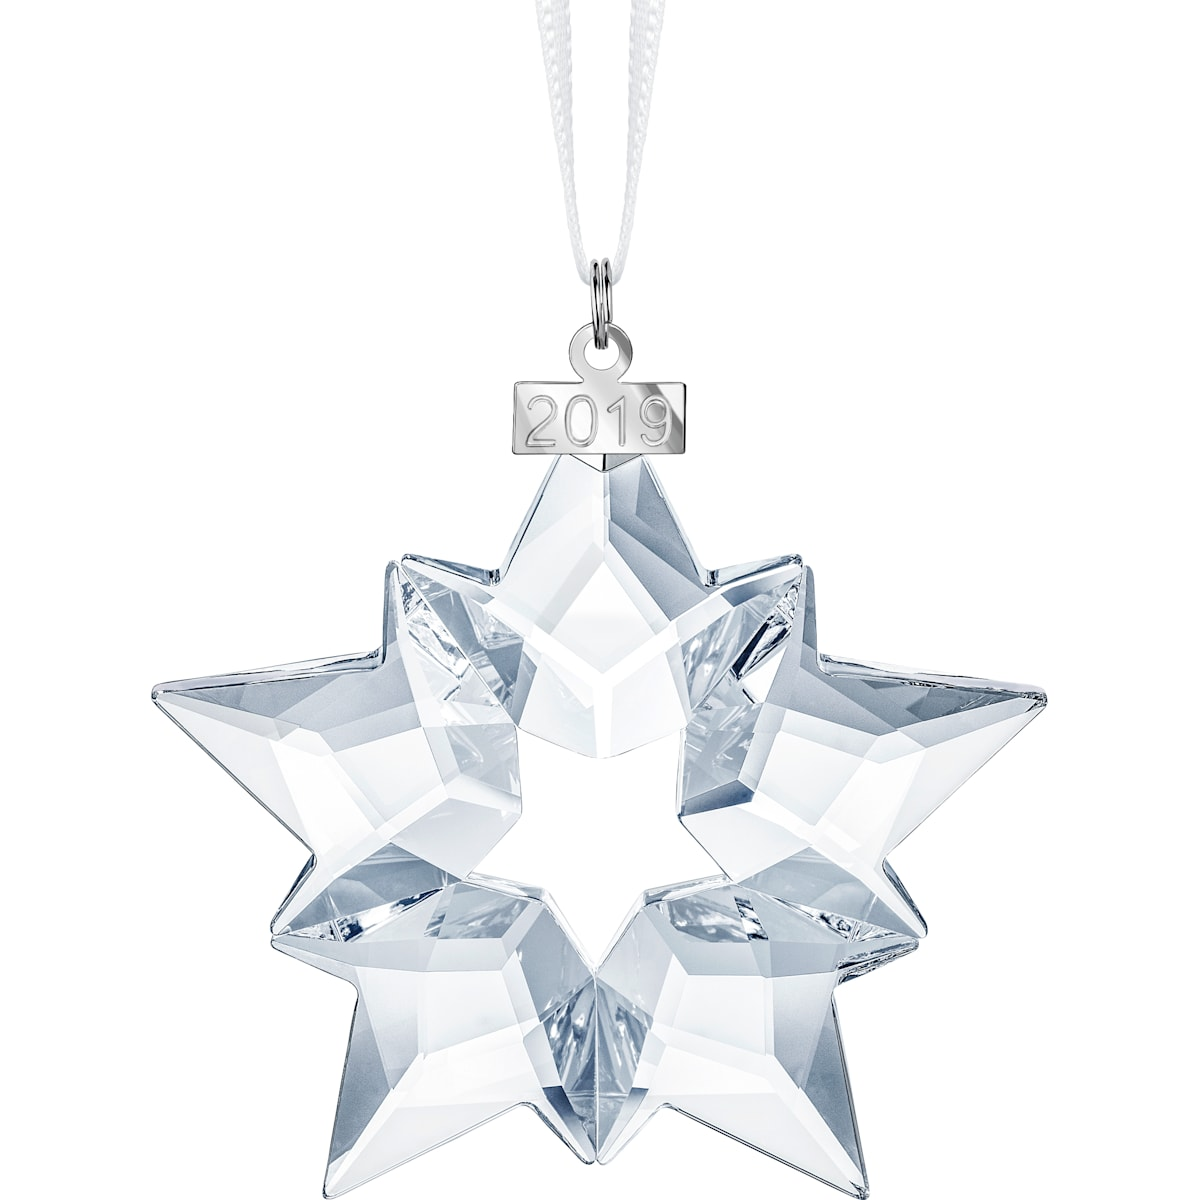 swarovski-annual-edition-ornament-2019-2.875-x-2.75-x0.25-in-5427990-2019.jpg